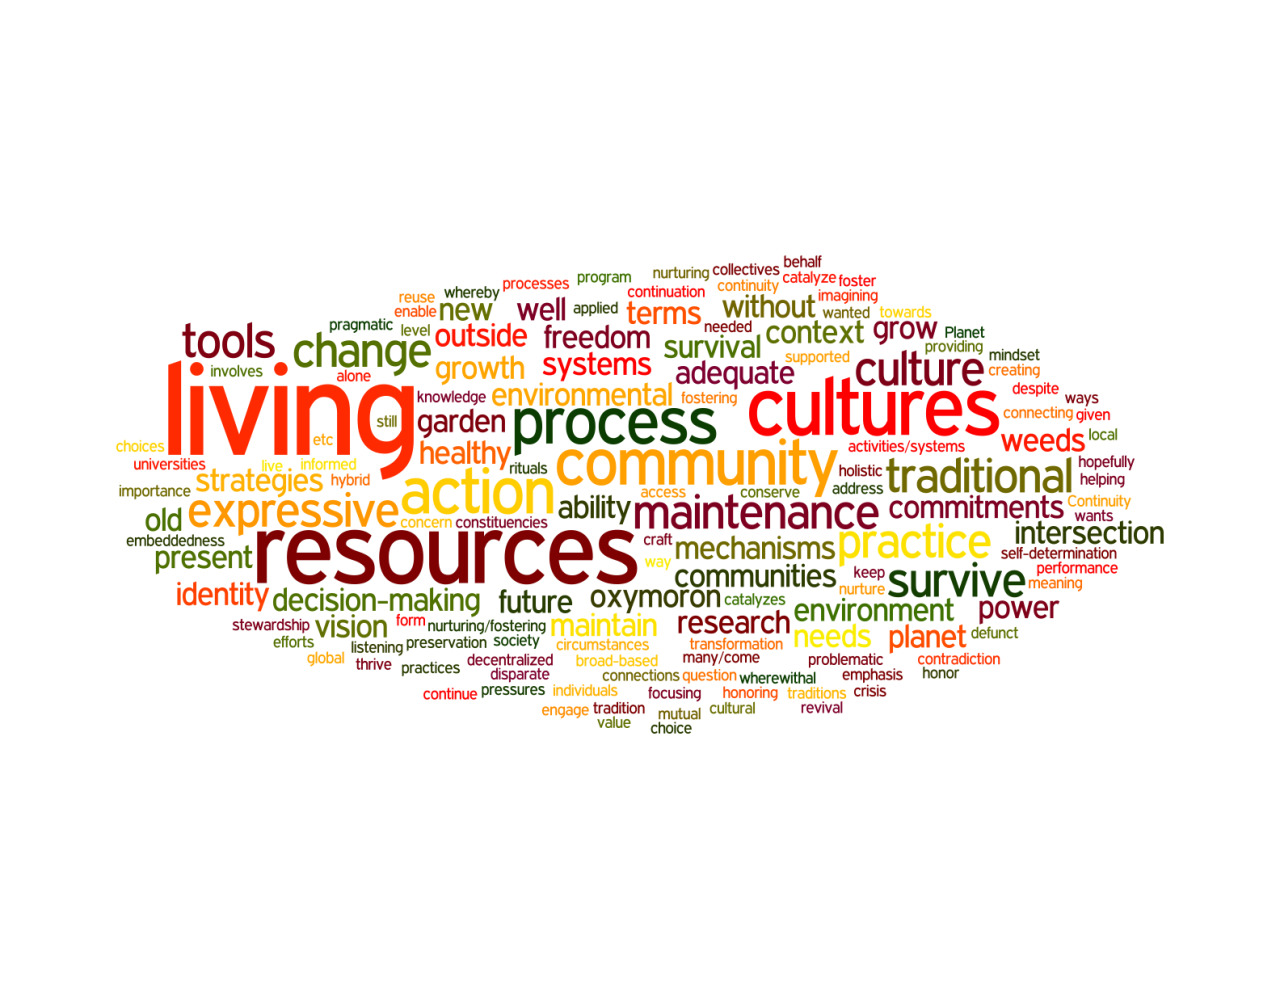 Everything that relates to cultural sustainability